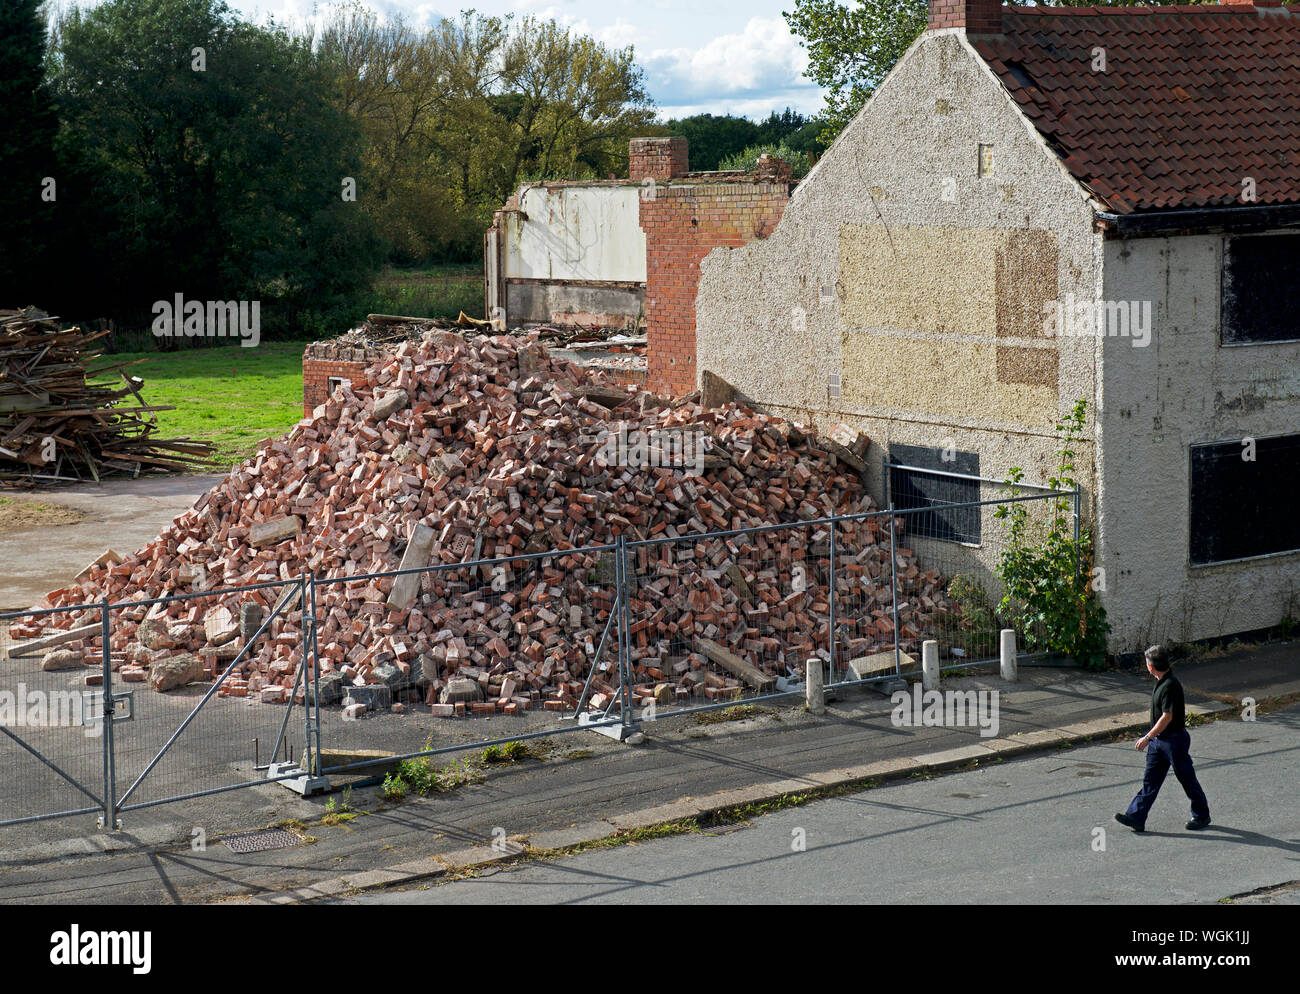 man-walking-past-demolished-building-now-just-a-pile-of-bricks-in-thorne-south-yorkshire-england-uk-WGK1JJ.jpg